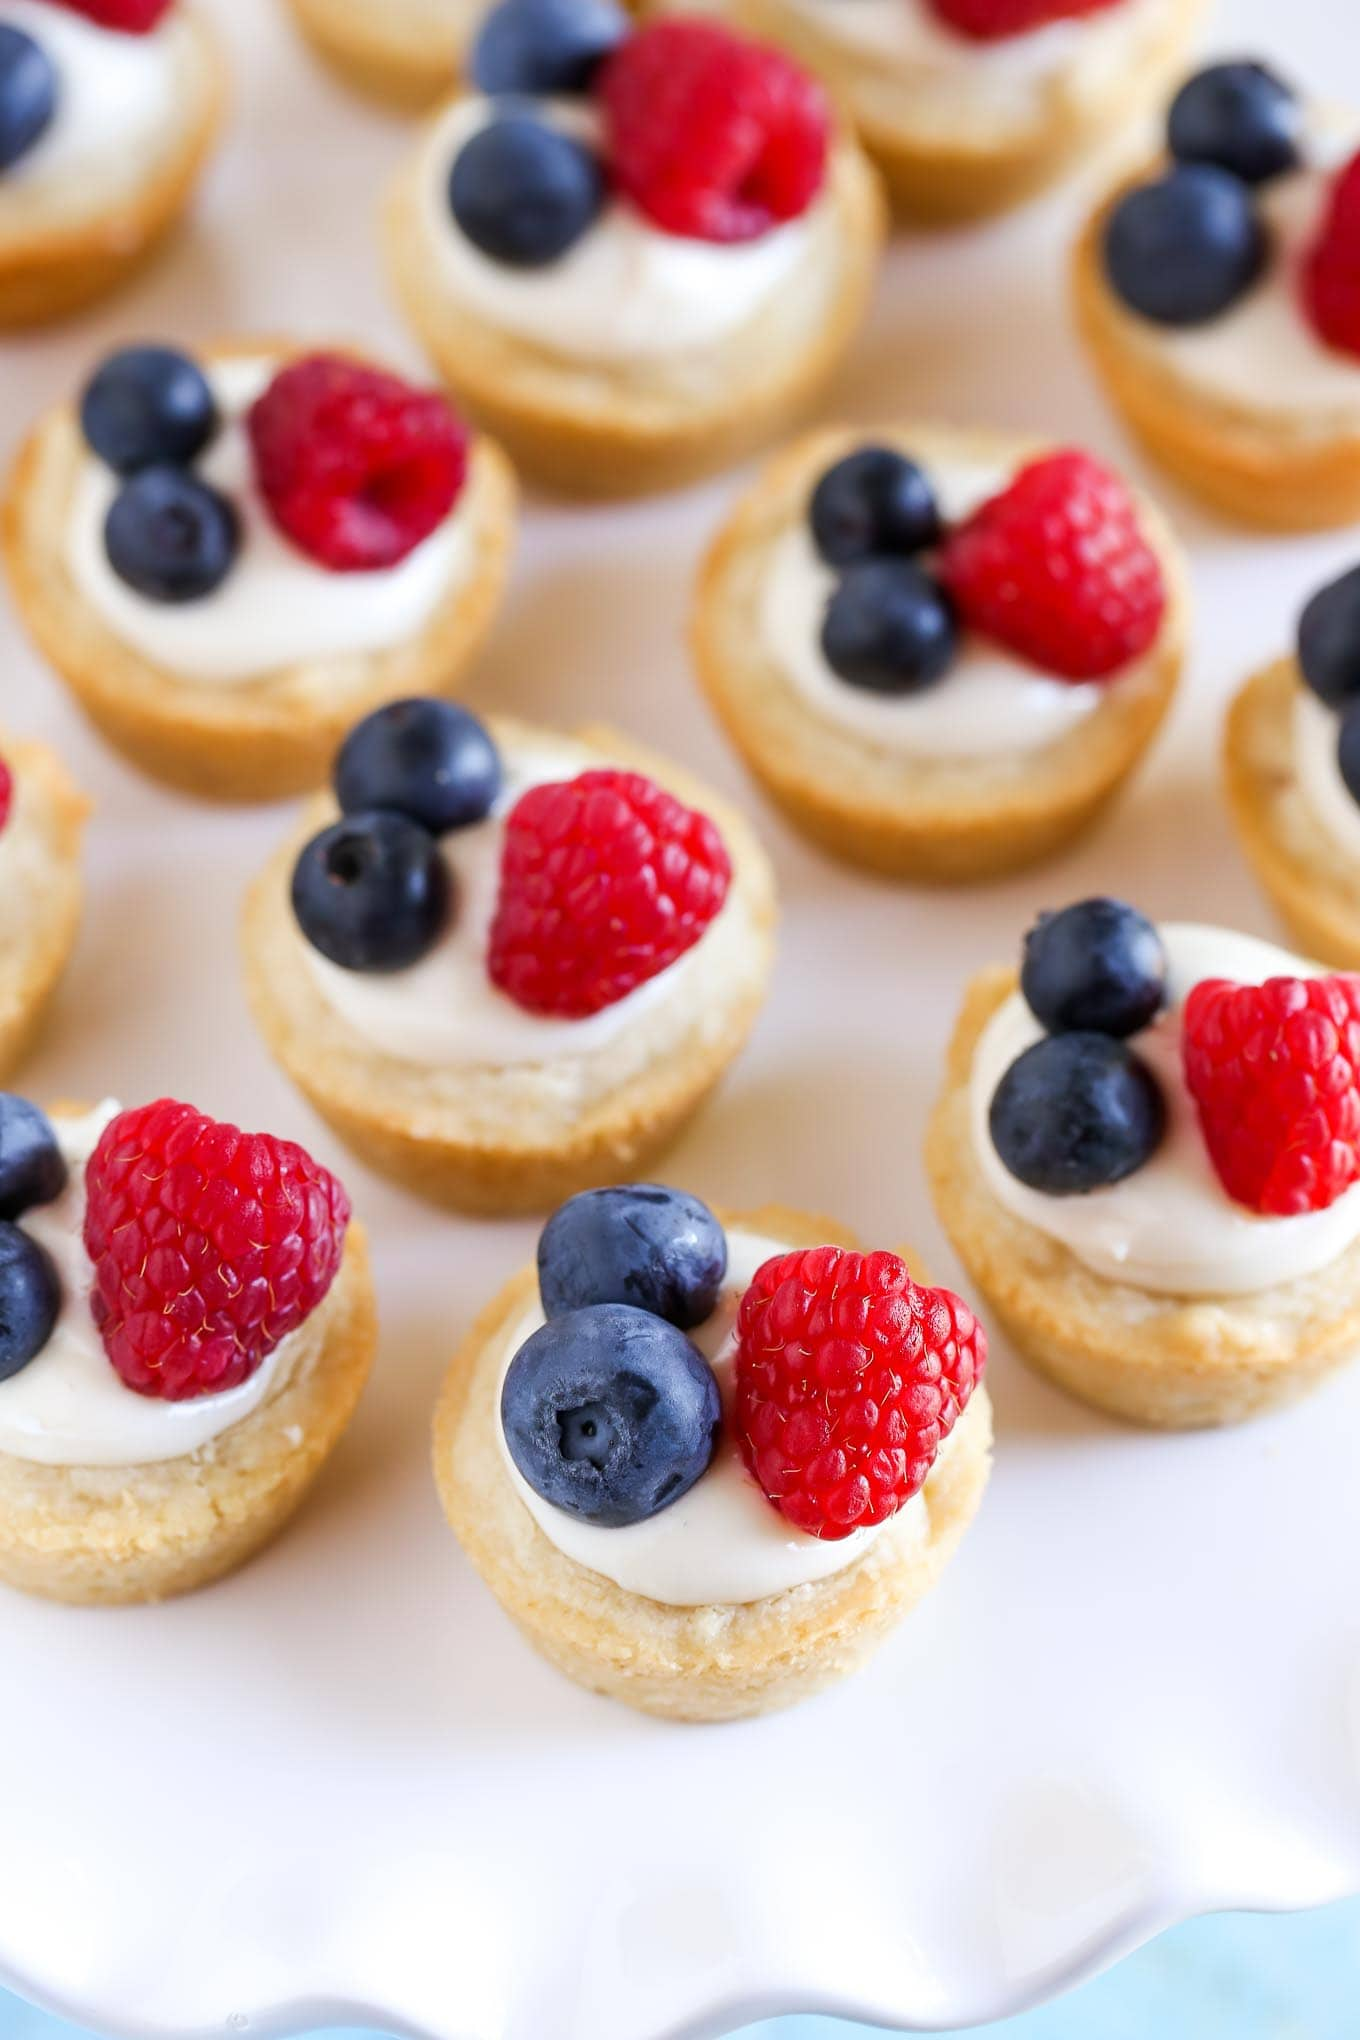 Sugar cookie cups with a lemon cream cheese filling and topped with fresh berries. These Lemon Berry Cheesecake Sugar Cookie Cups make the perfect summer dessert!